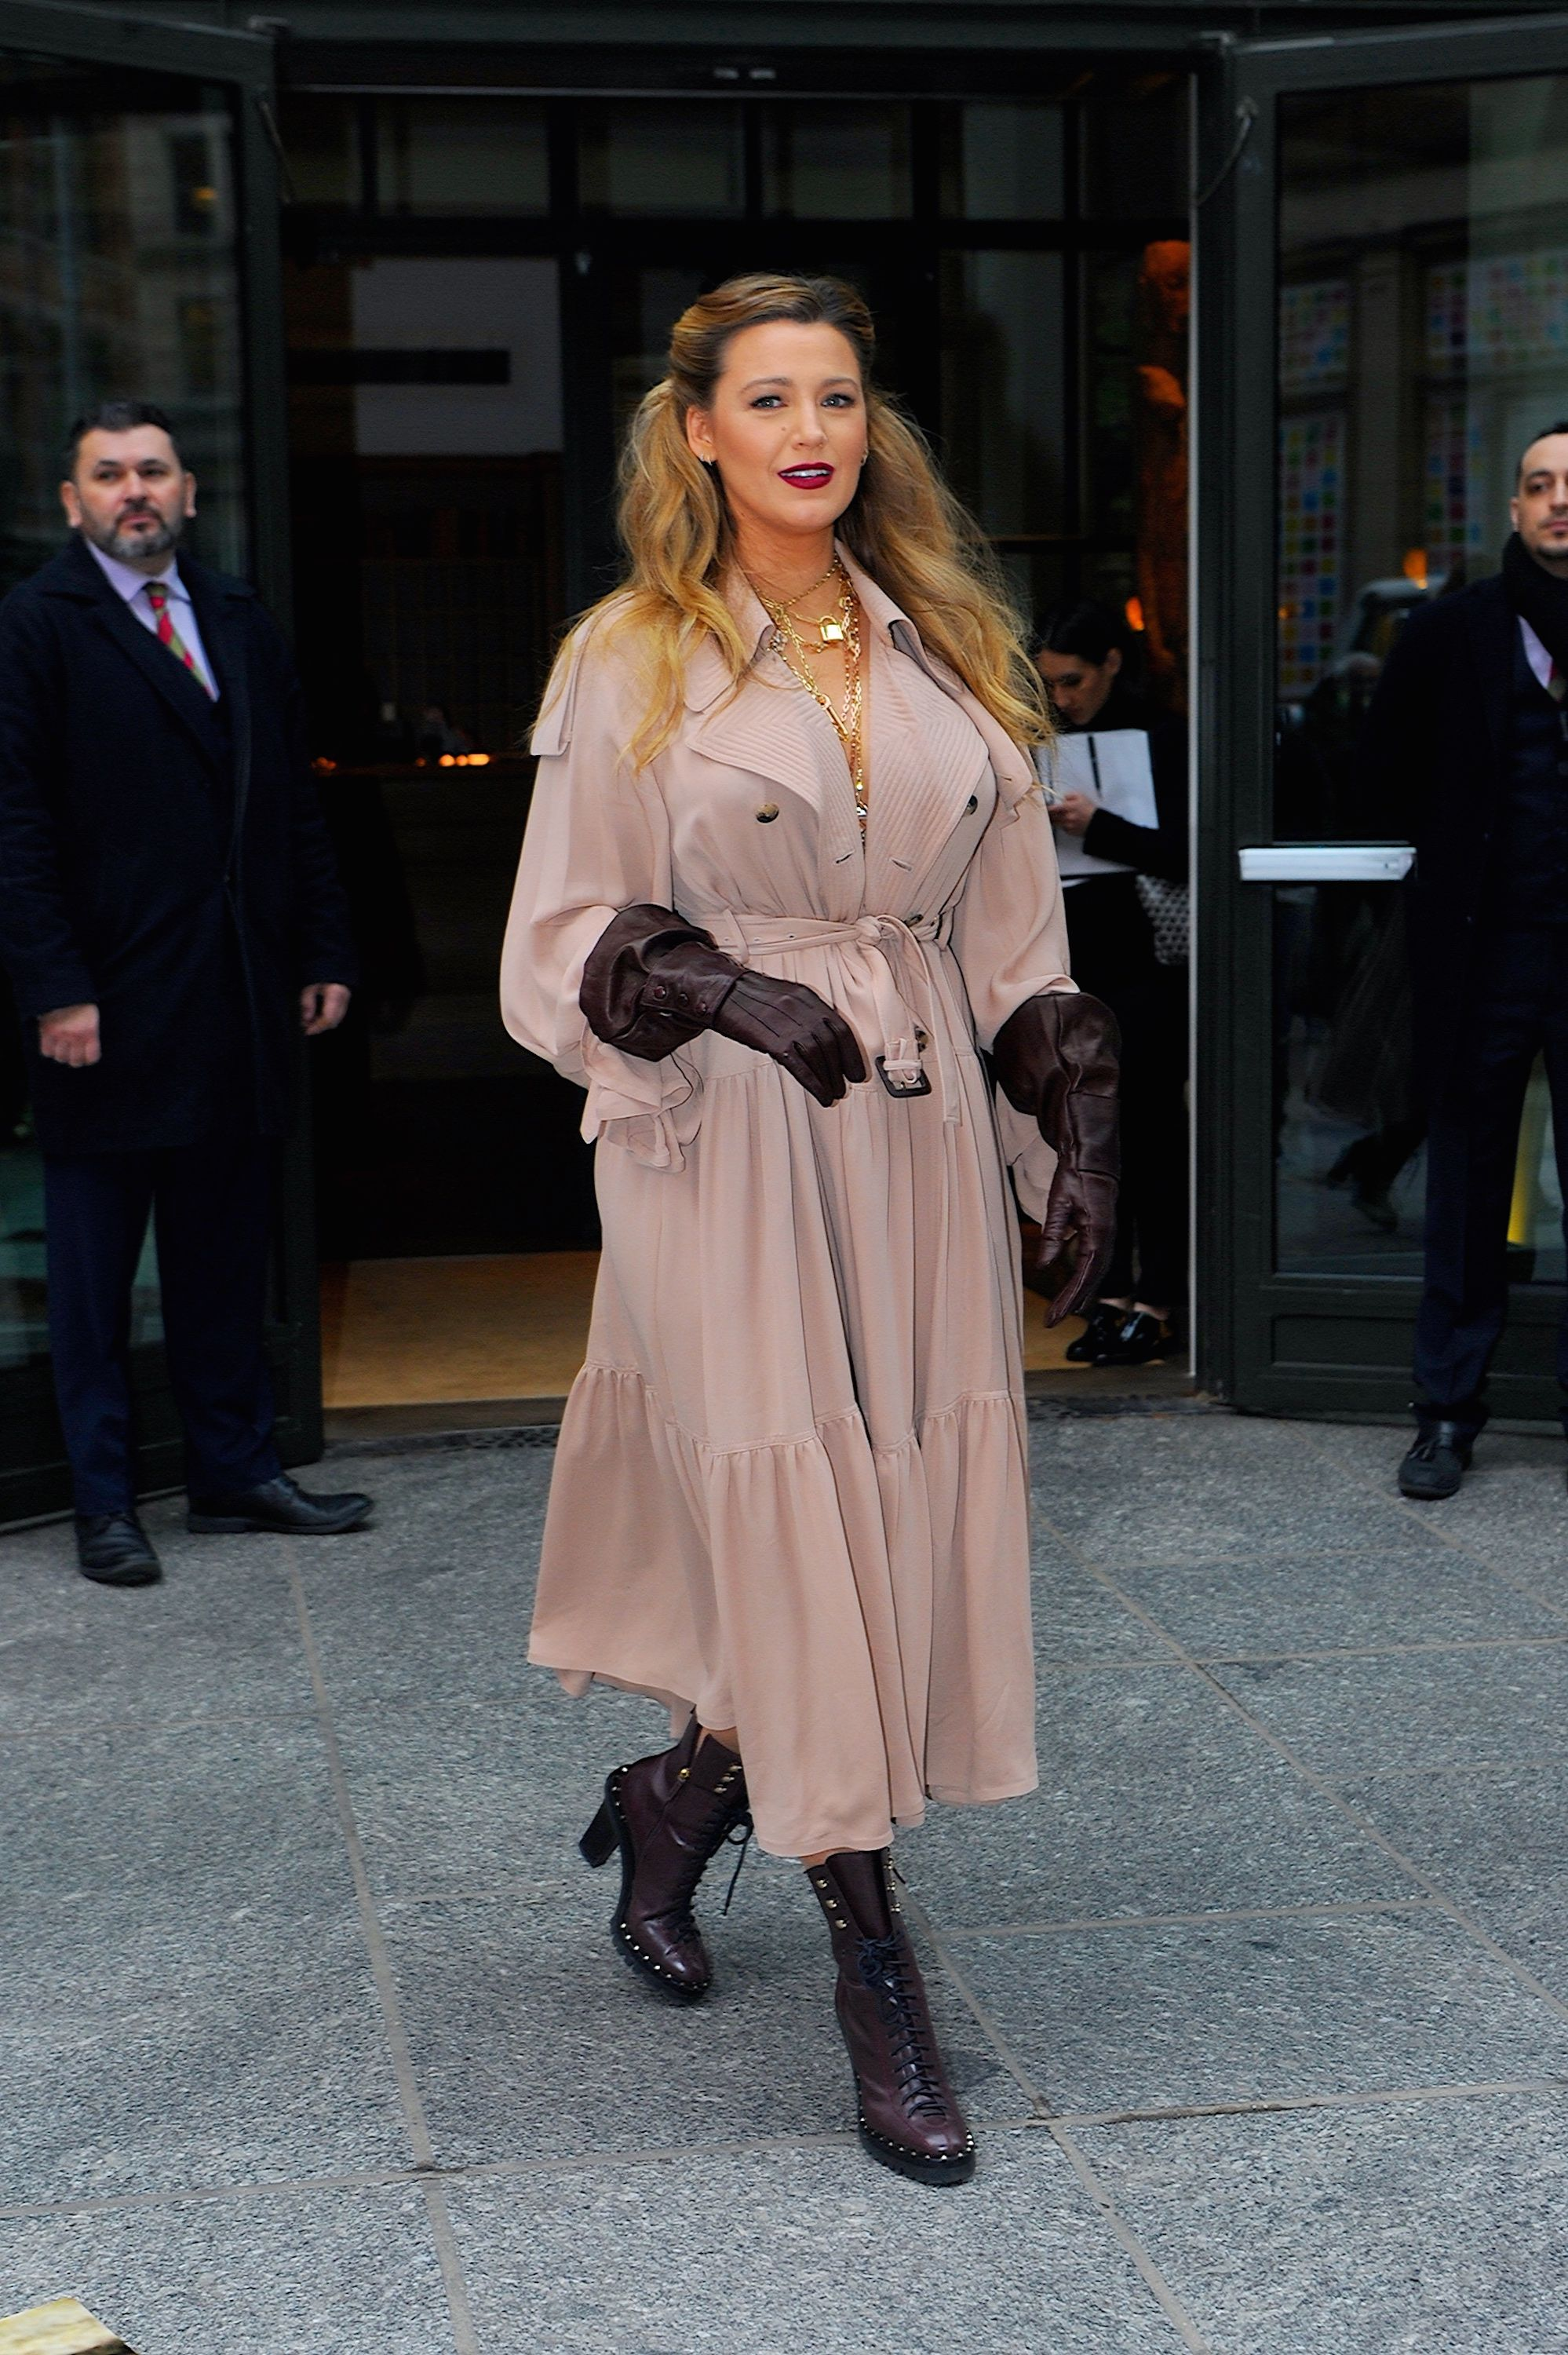 Blake Lively Went for a Vintage Femme Fatale Vibe to Kick Off Her New Press Tour